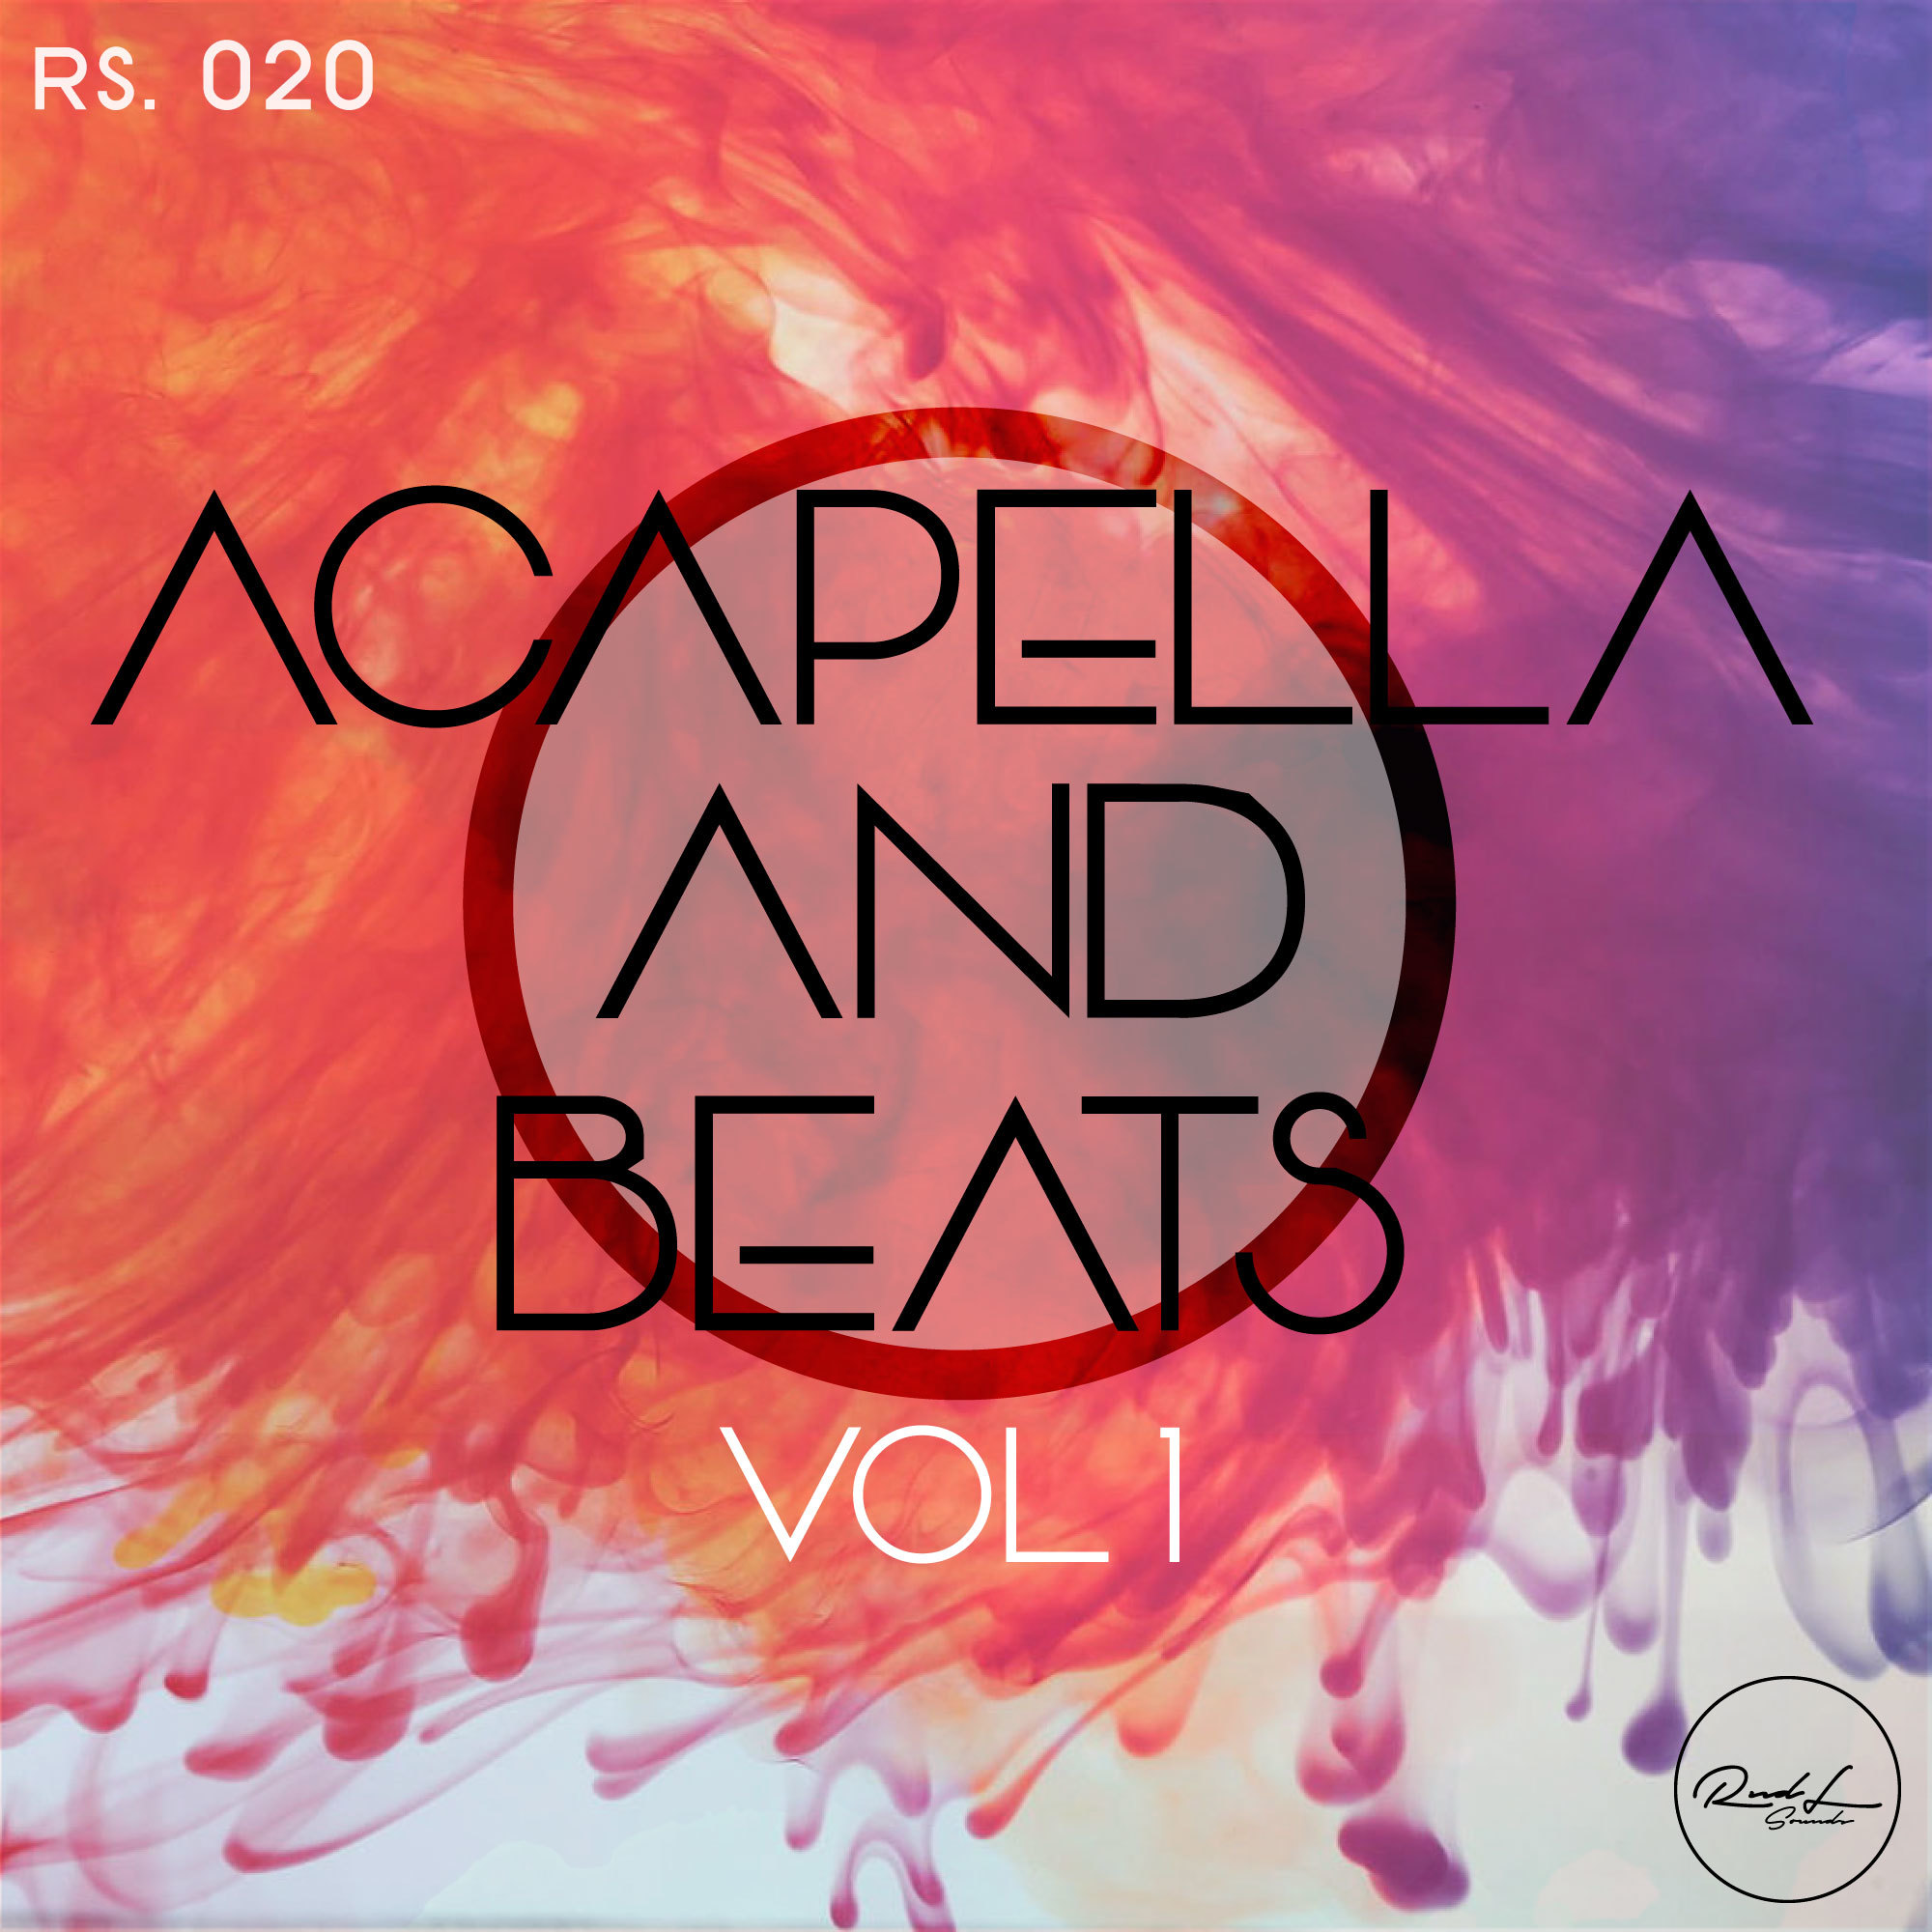 Download roundel sounds acapella and beats vol 1 for Classic house acapellas